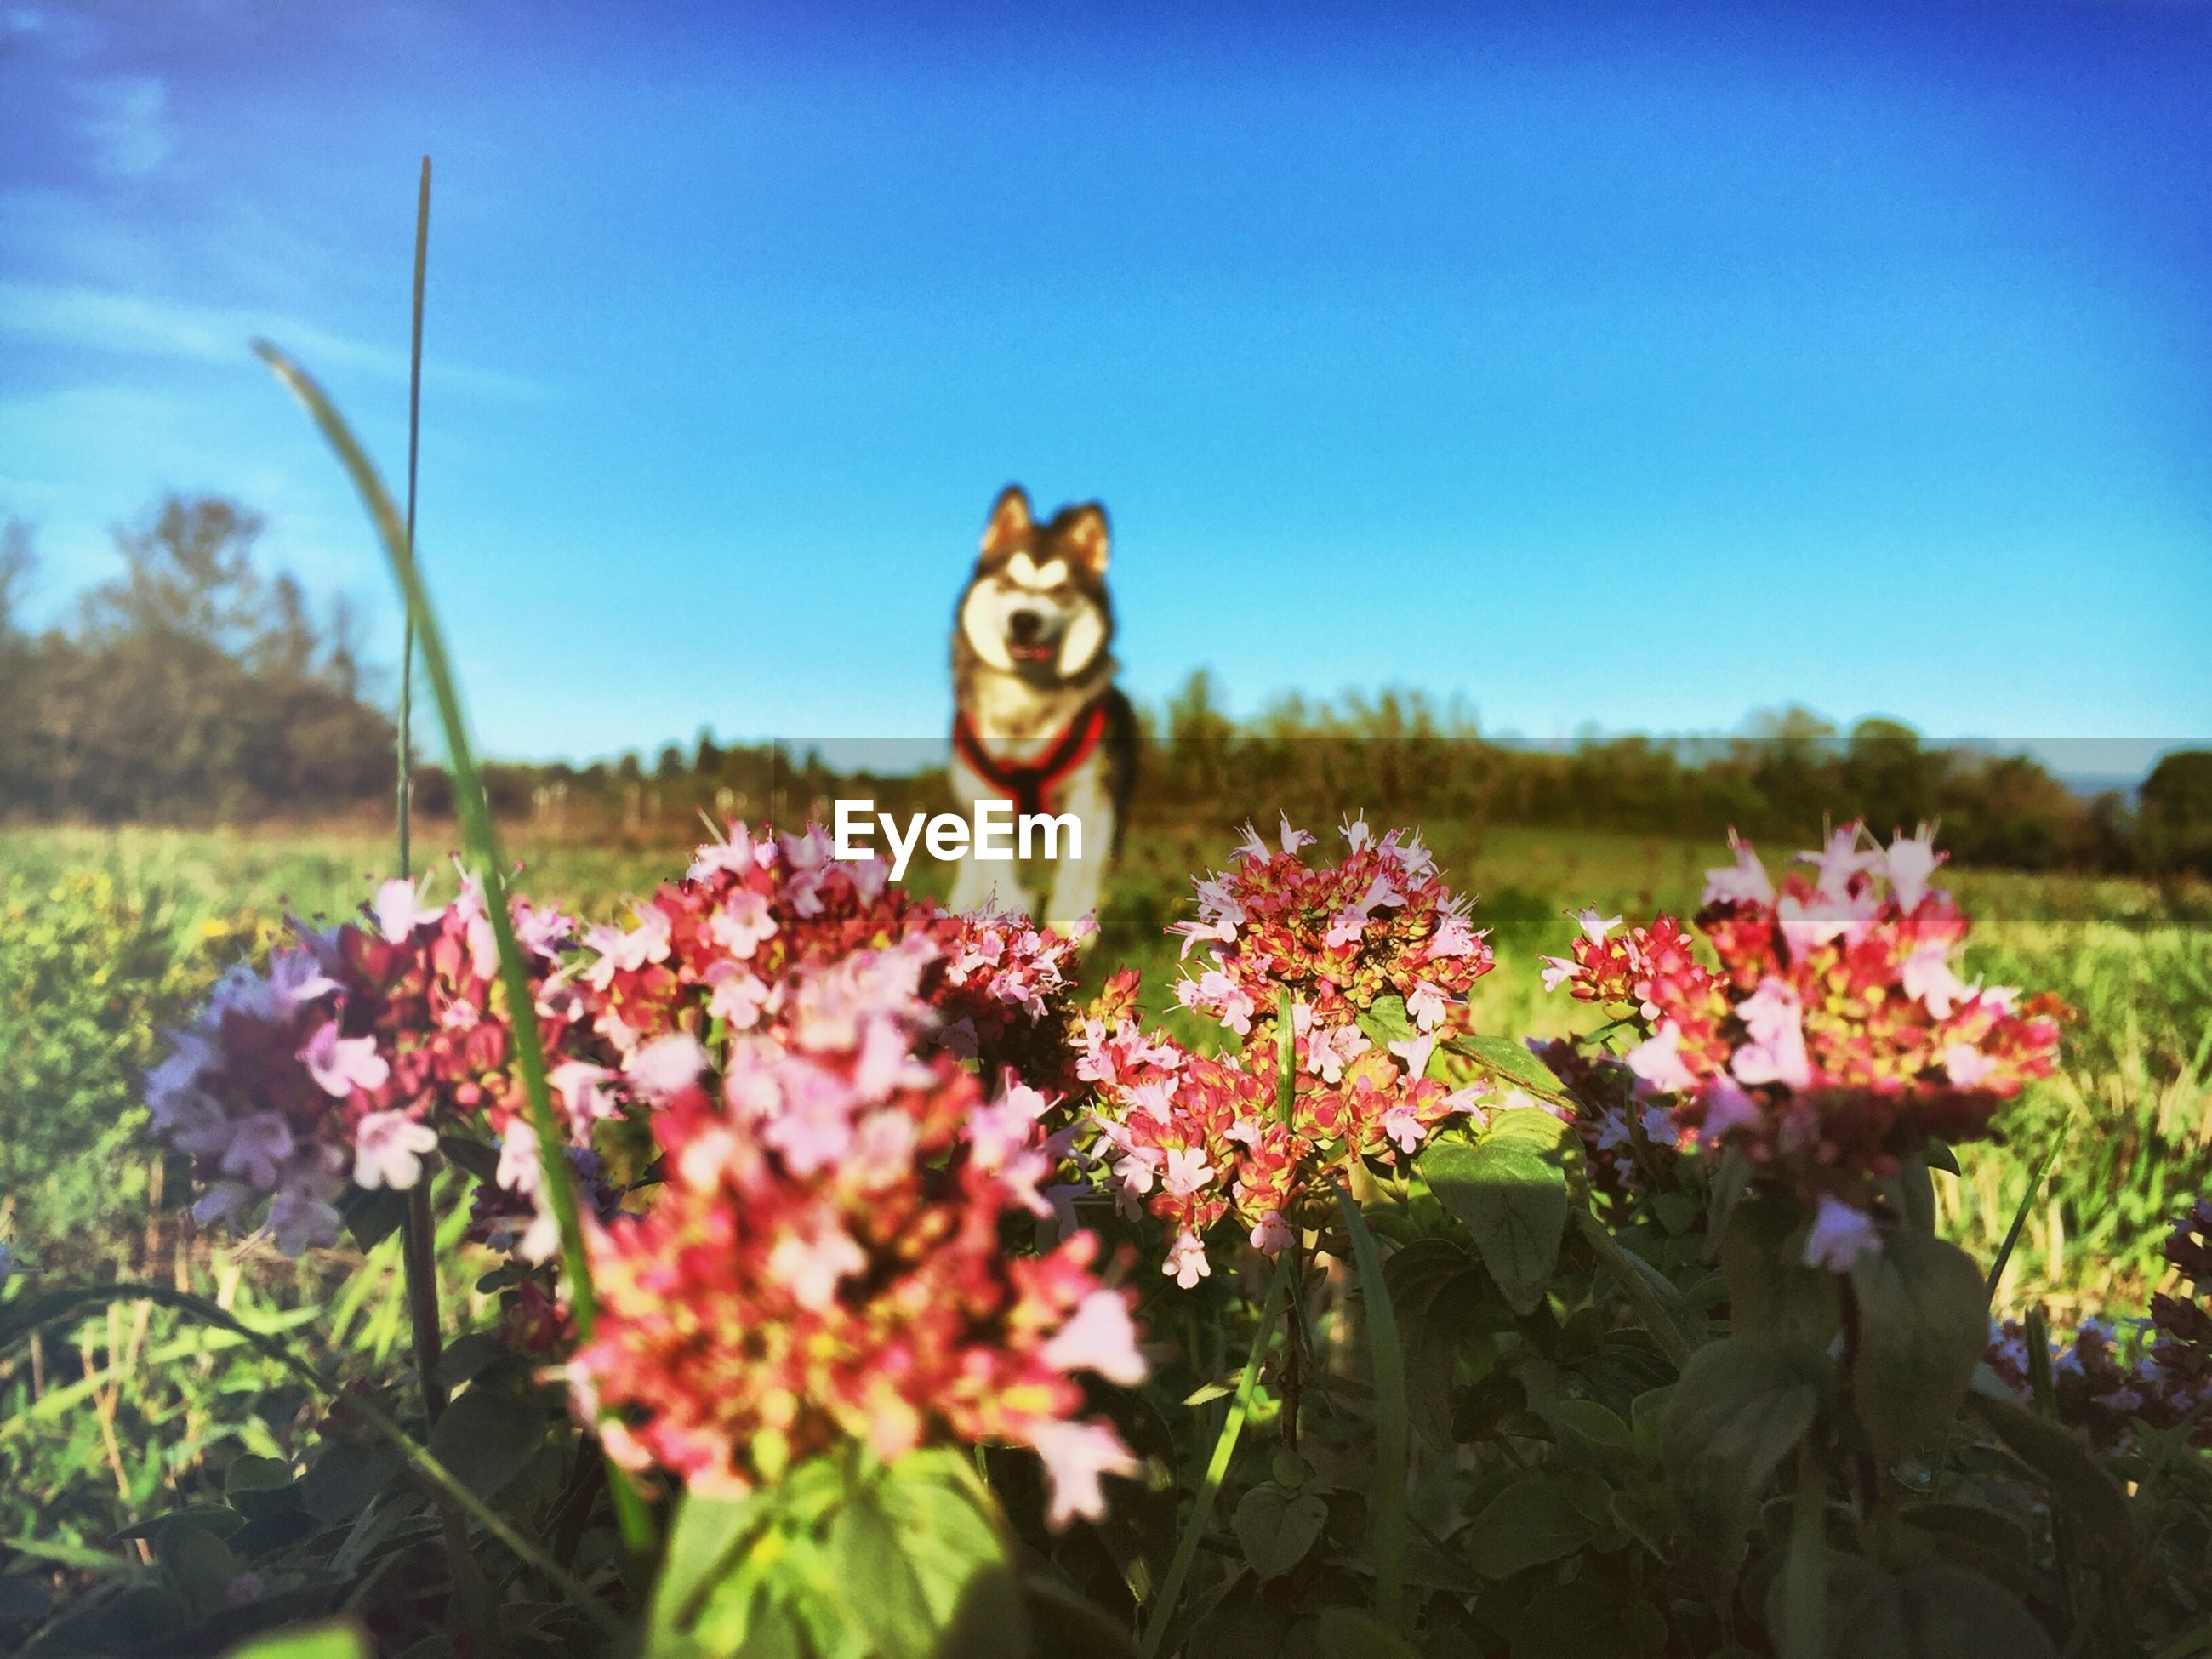 Flowers blooming on field with alaskan malamute in background against blue sky